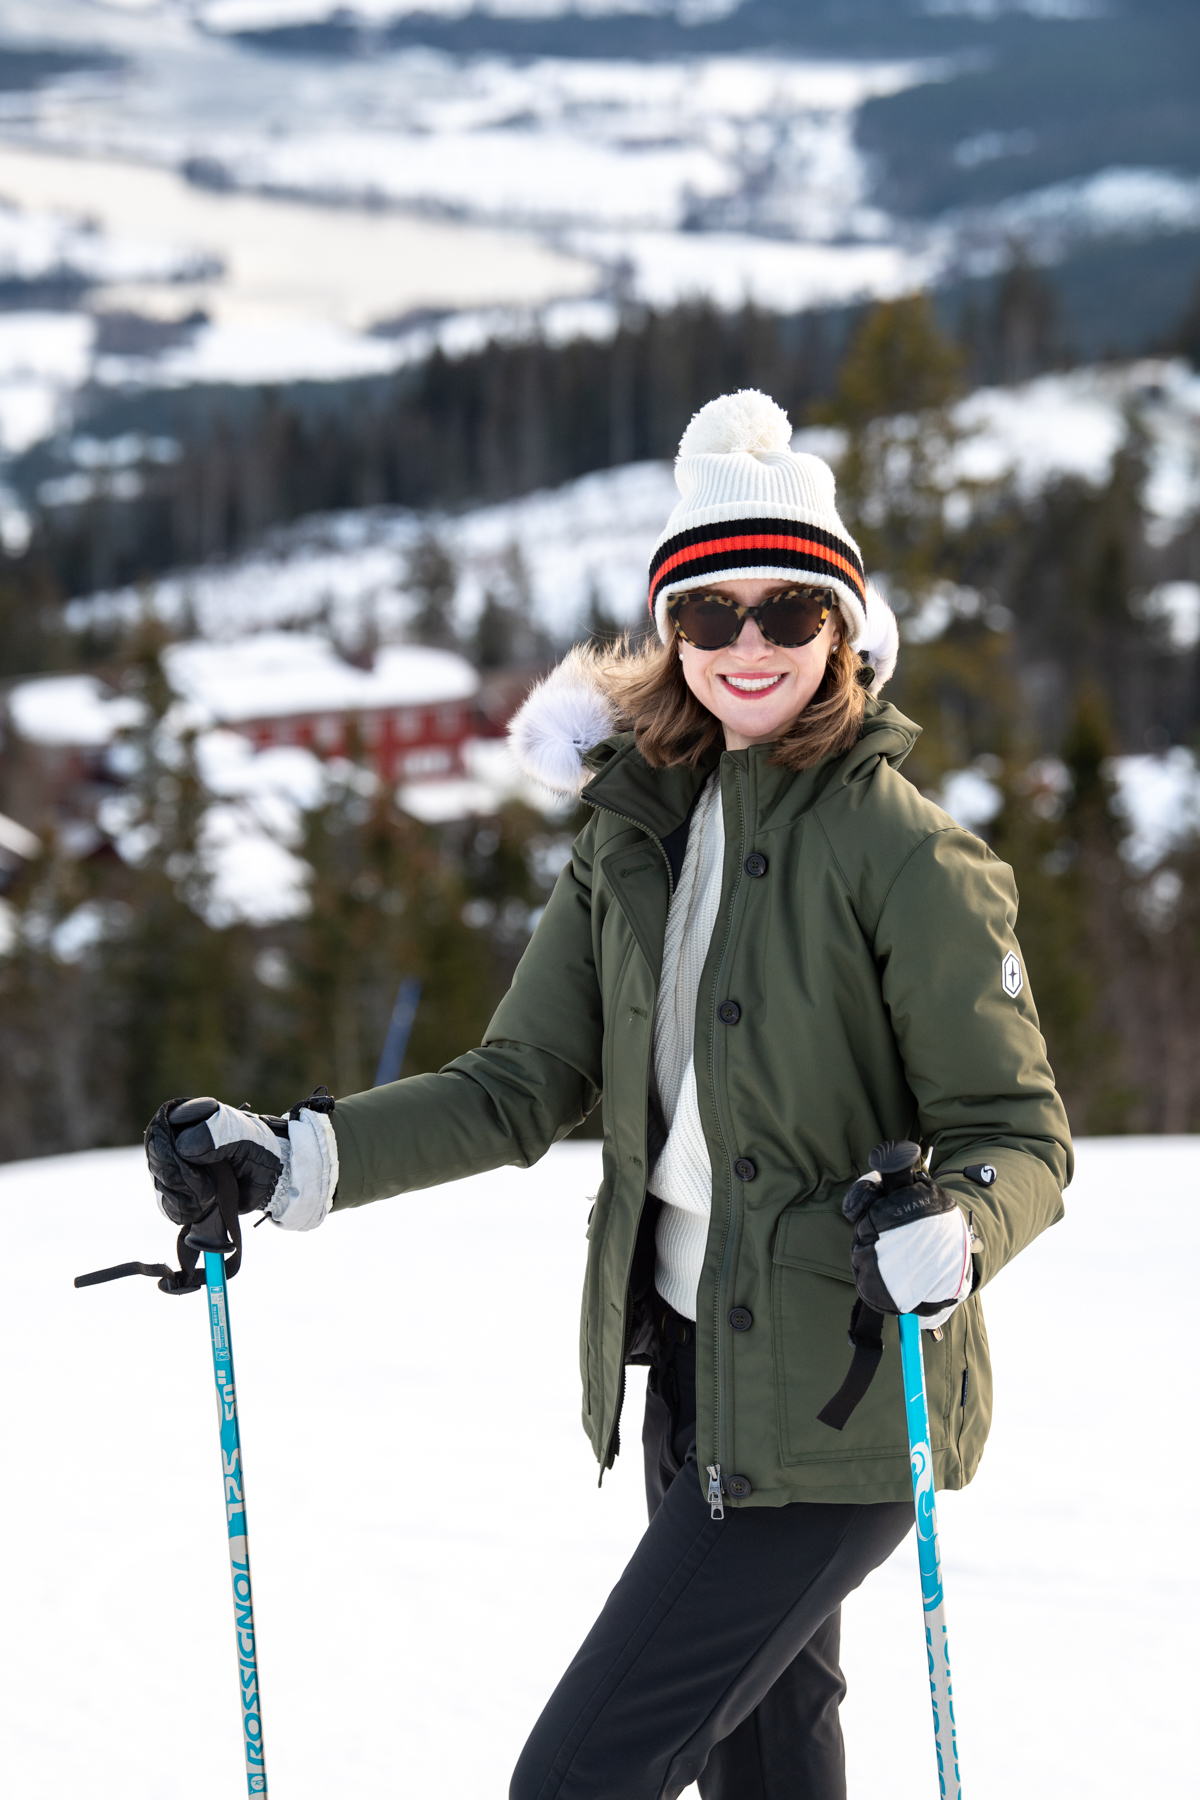 Stacie Flinner x Norway Ski Trip-18.jpg